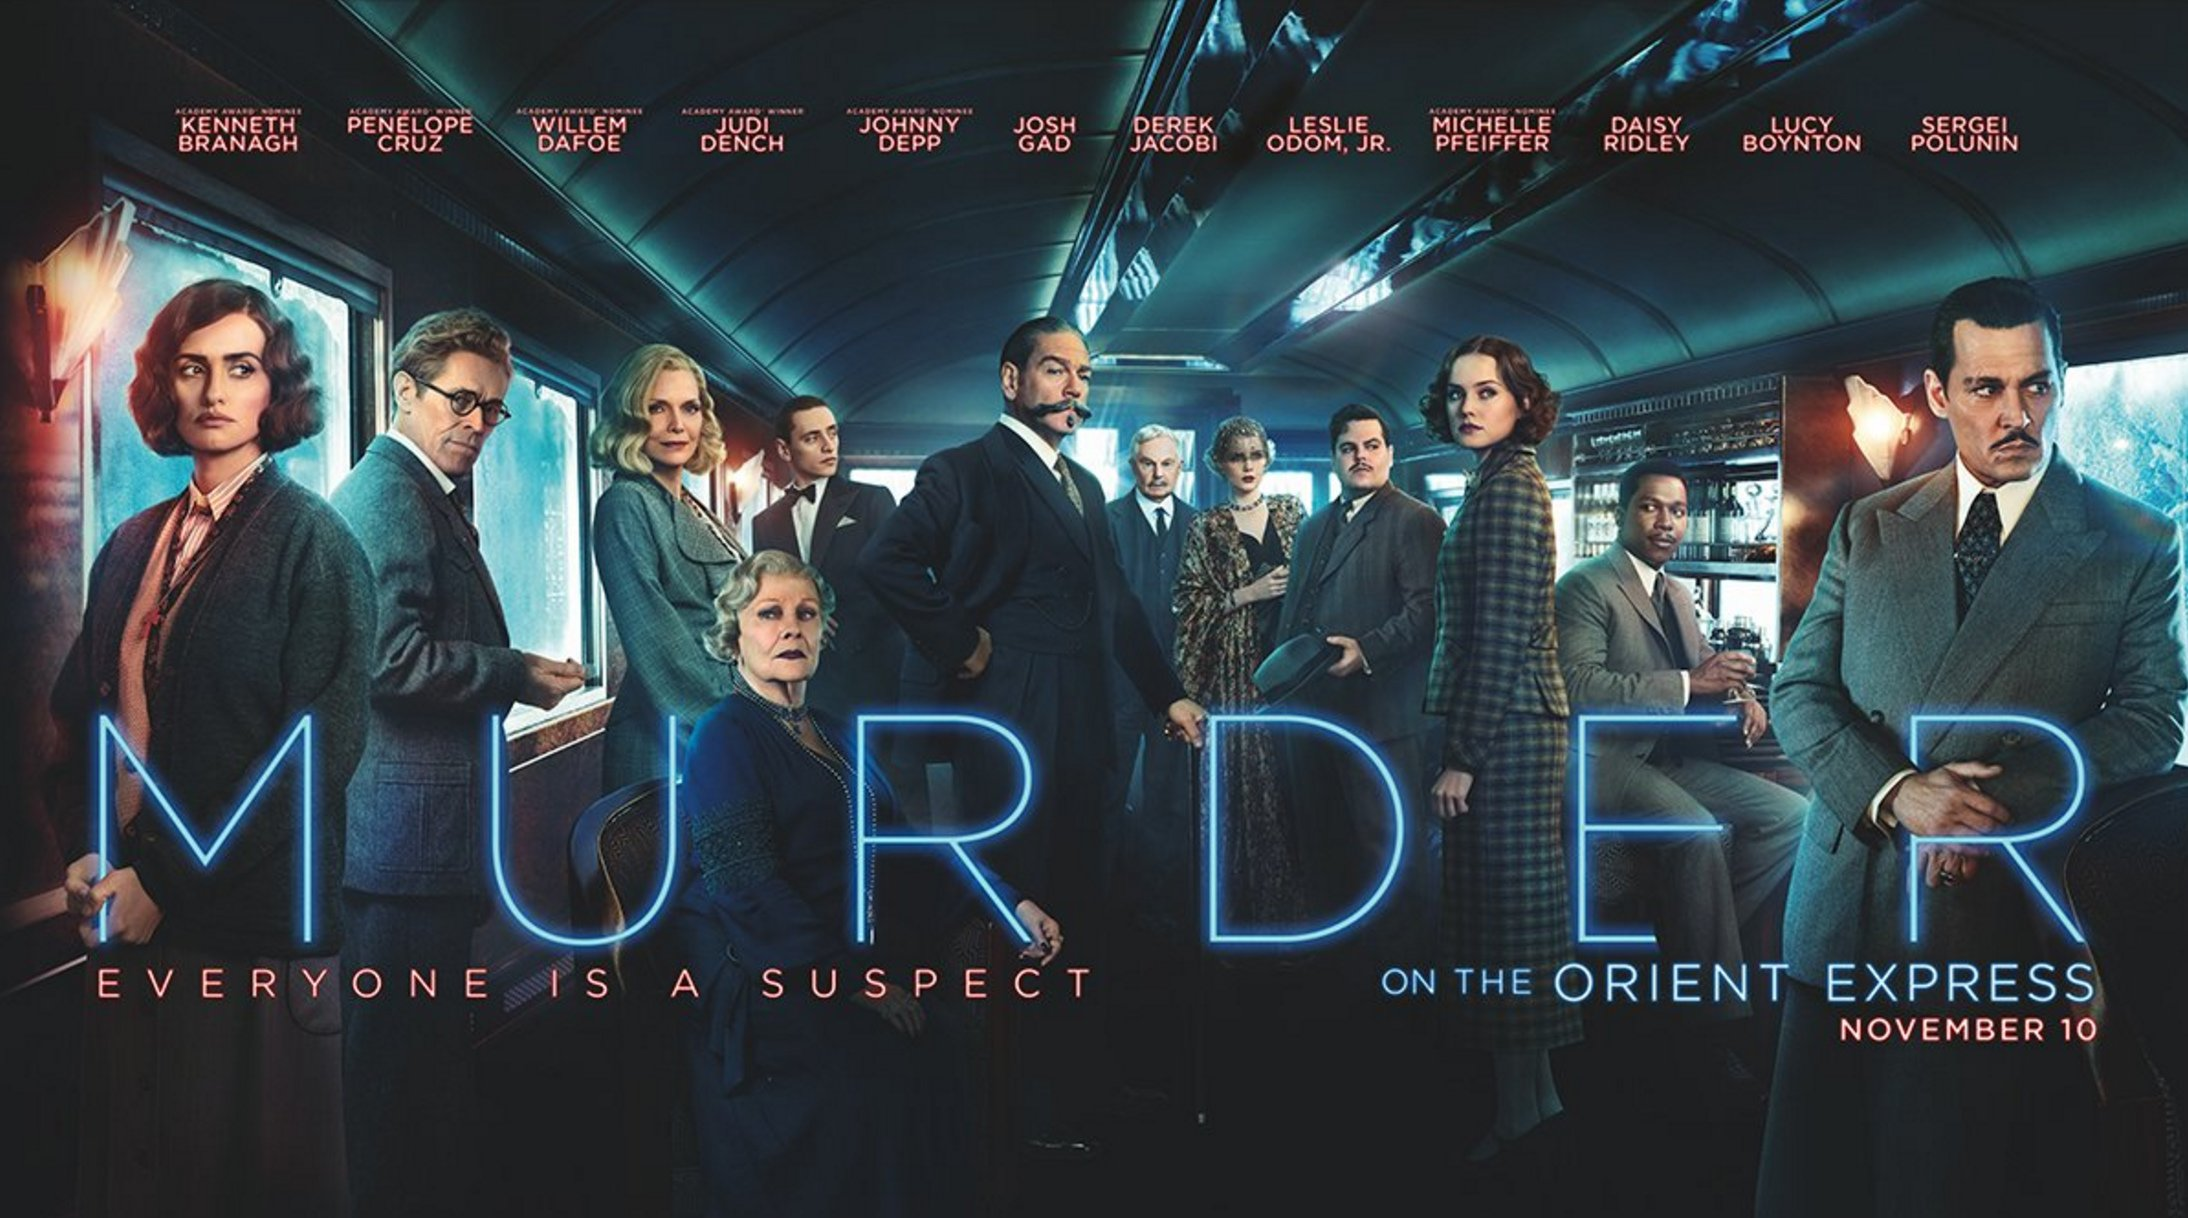 Kenneth Branagh And His Magnificent 'Tache Crack The Case In New Murder On The Orient Express Trailer